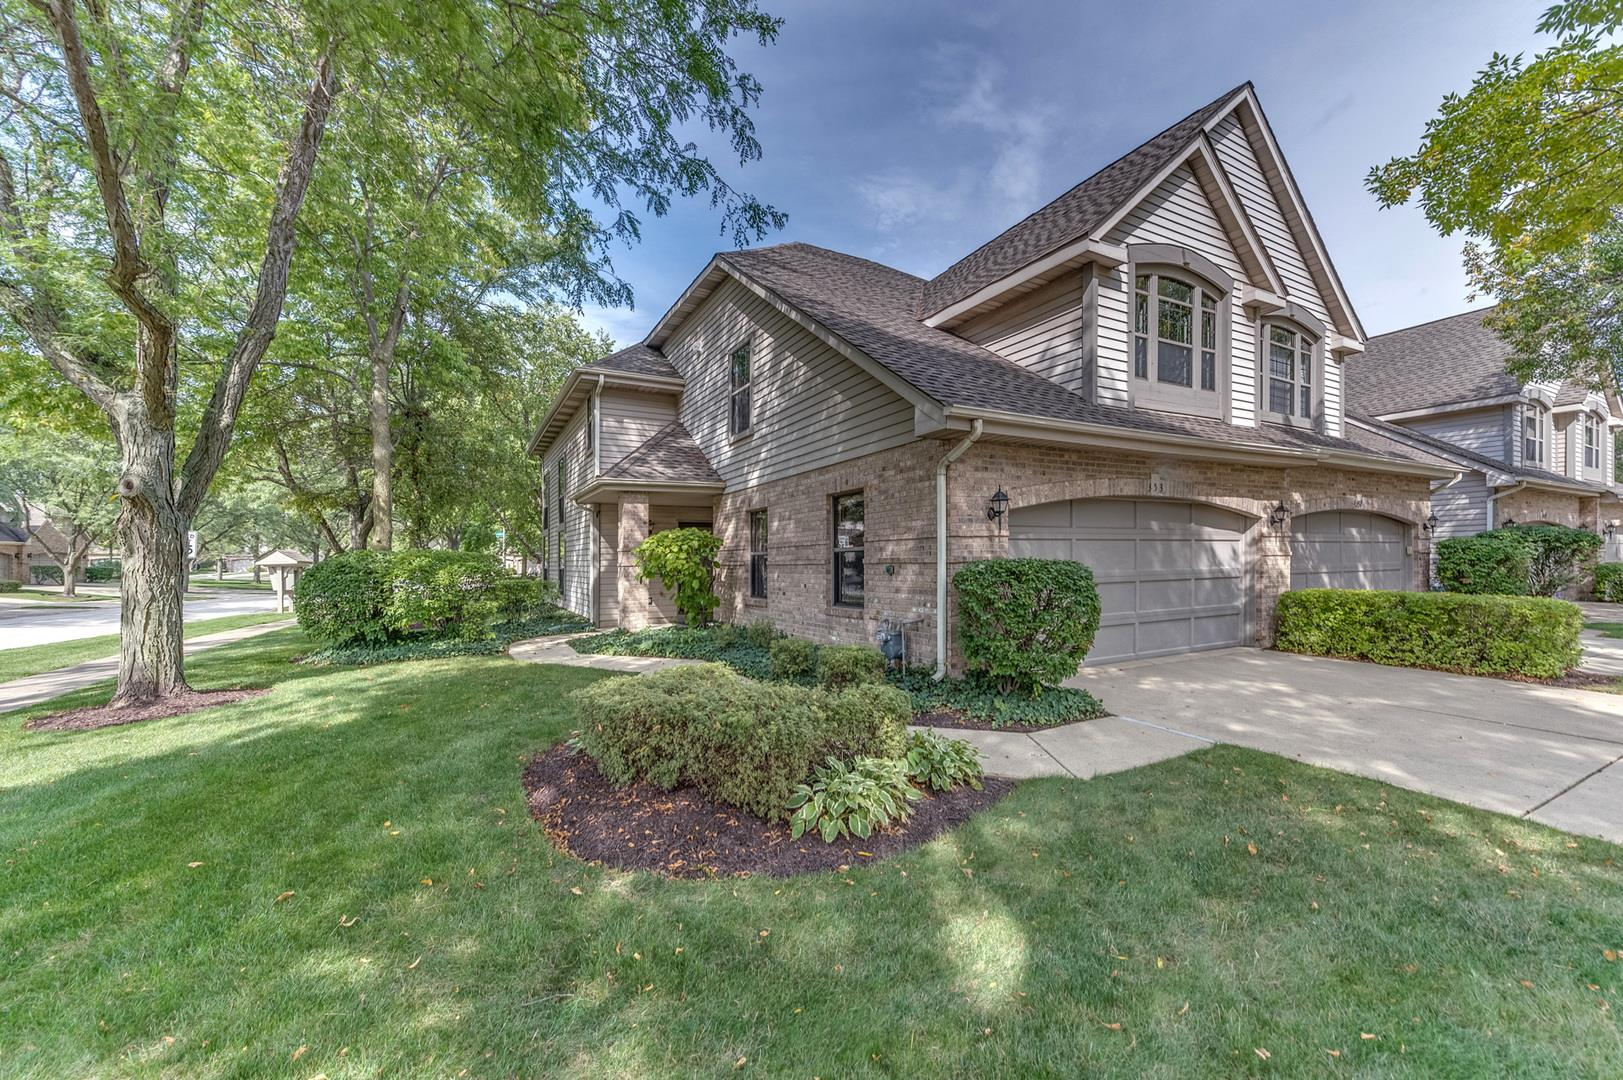 353 Club House Drive, Bloomingdale, IL 60108 - #: 10633395